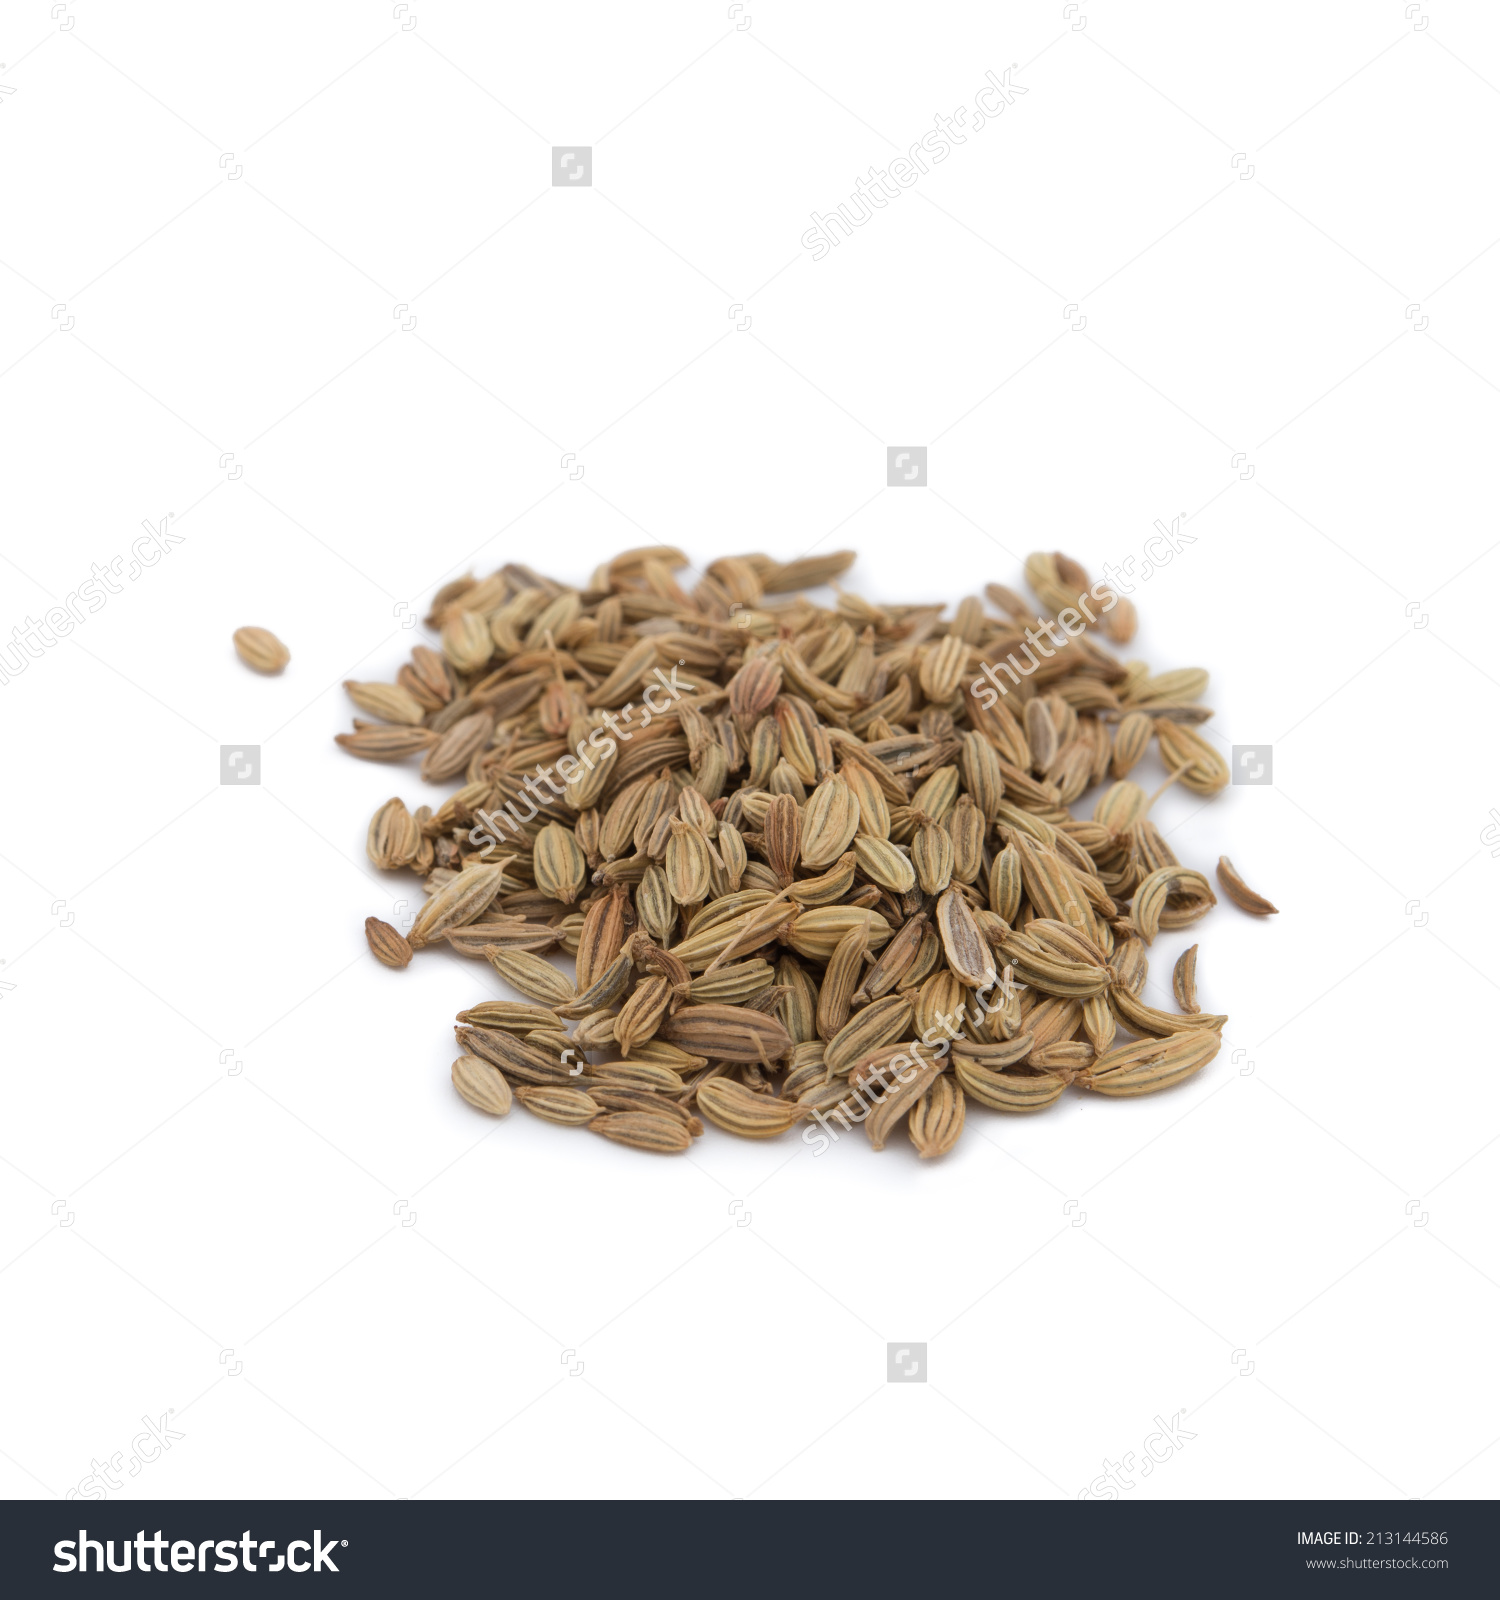 Dried Herbs,Fennel, Sweet Fennel, Foeniculum Vulgare Mill.[1.